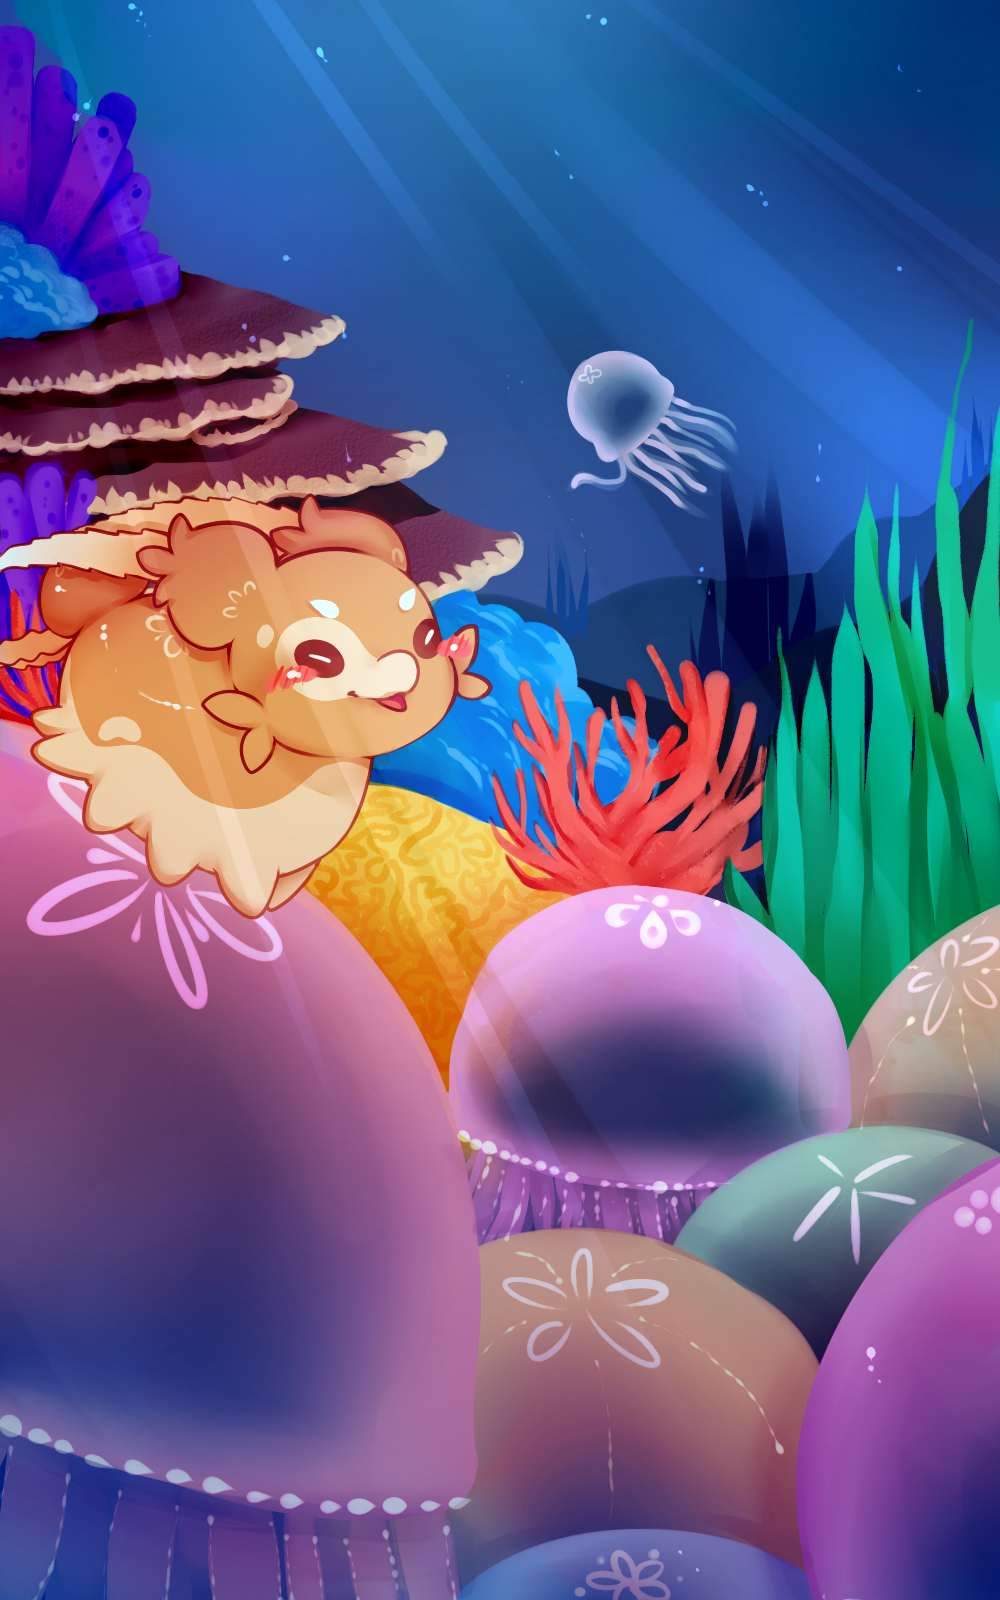 [DTA] Hello Little Jelly by OMGProductions